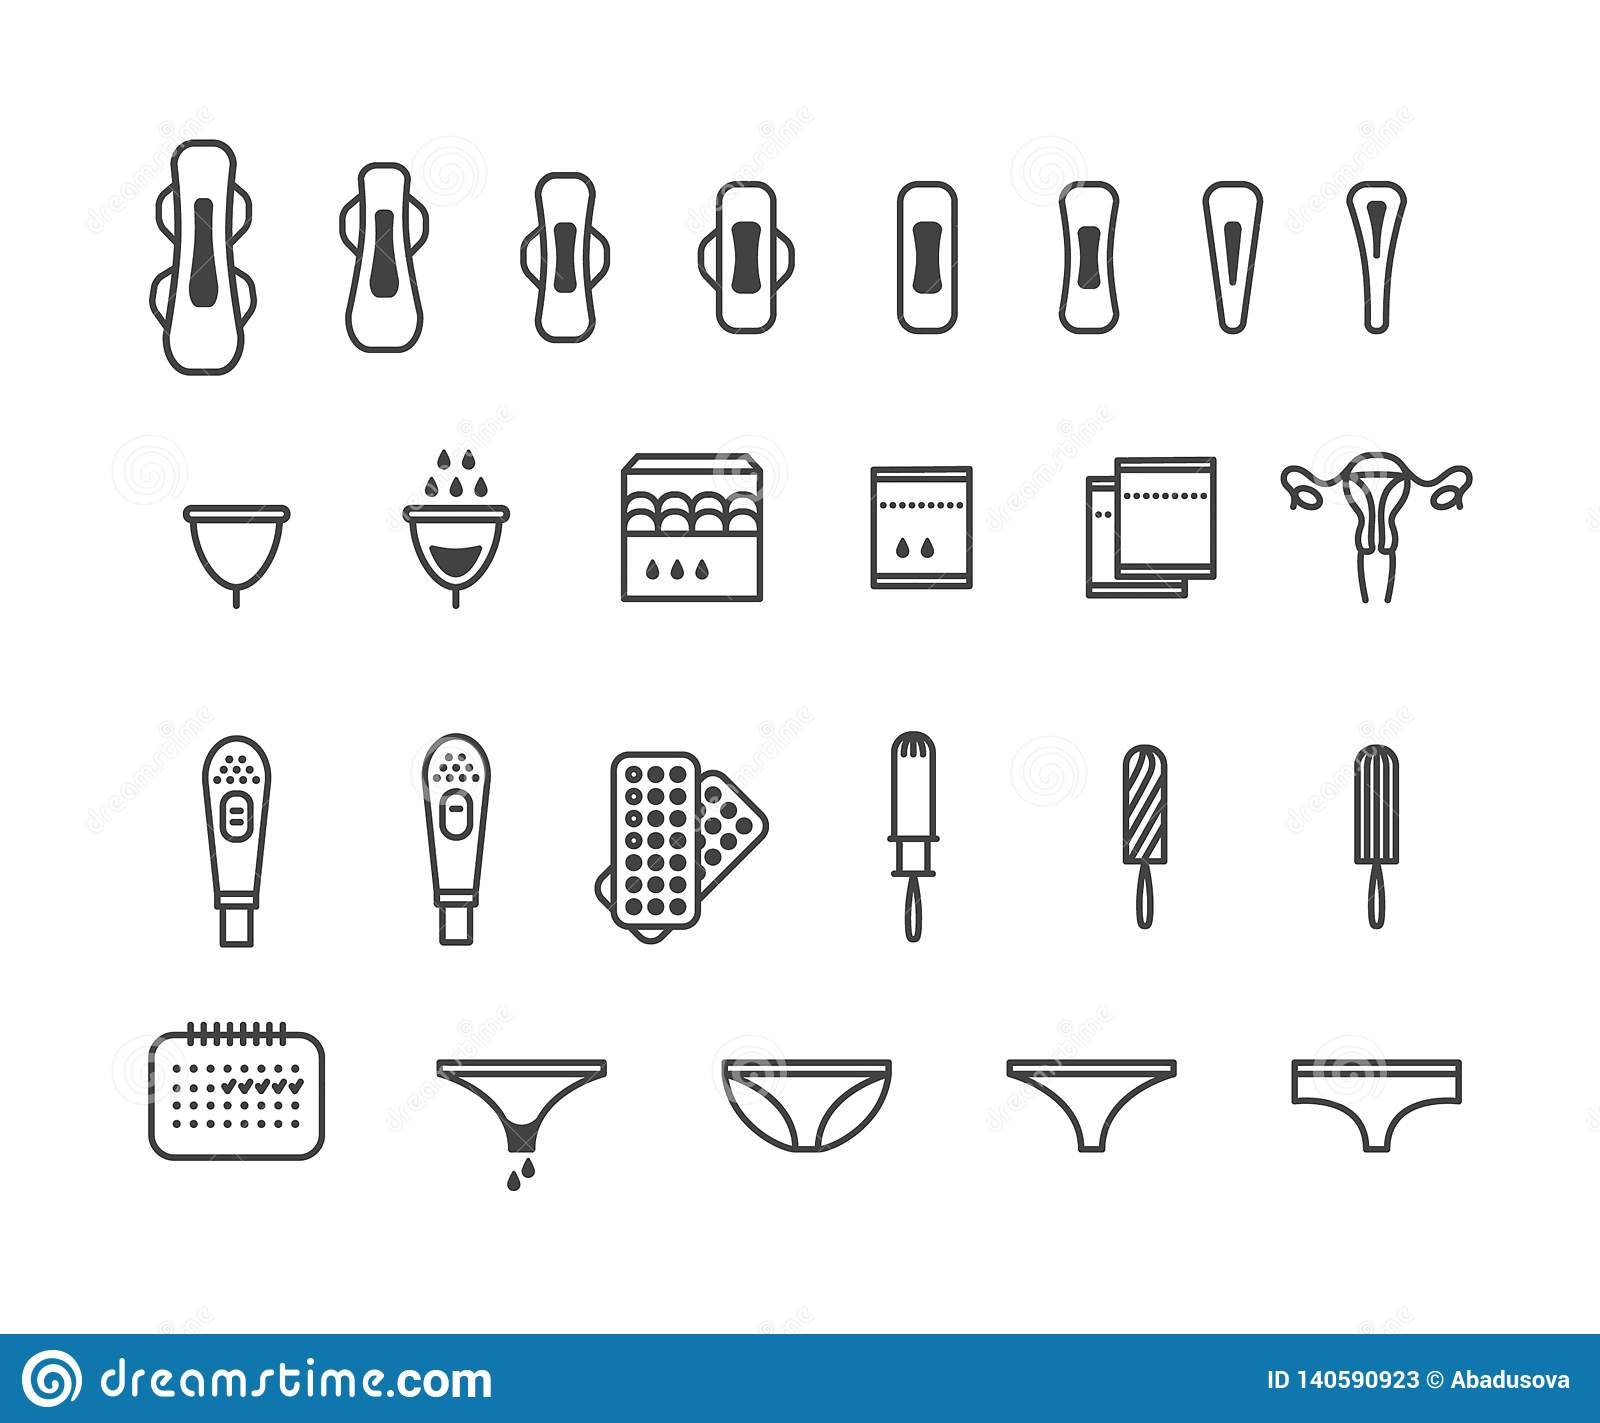 Feminine hygiene products - sanitary pad, pantyliner, tampon, menstrual cup icons